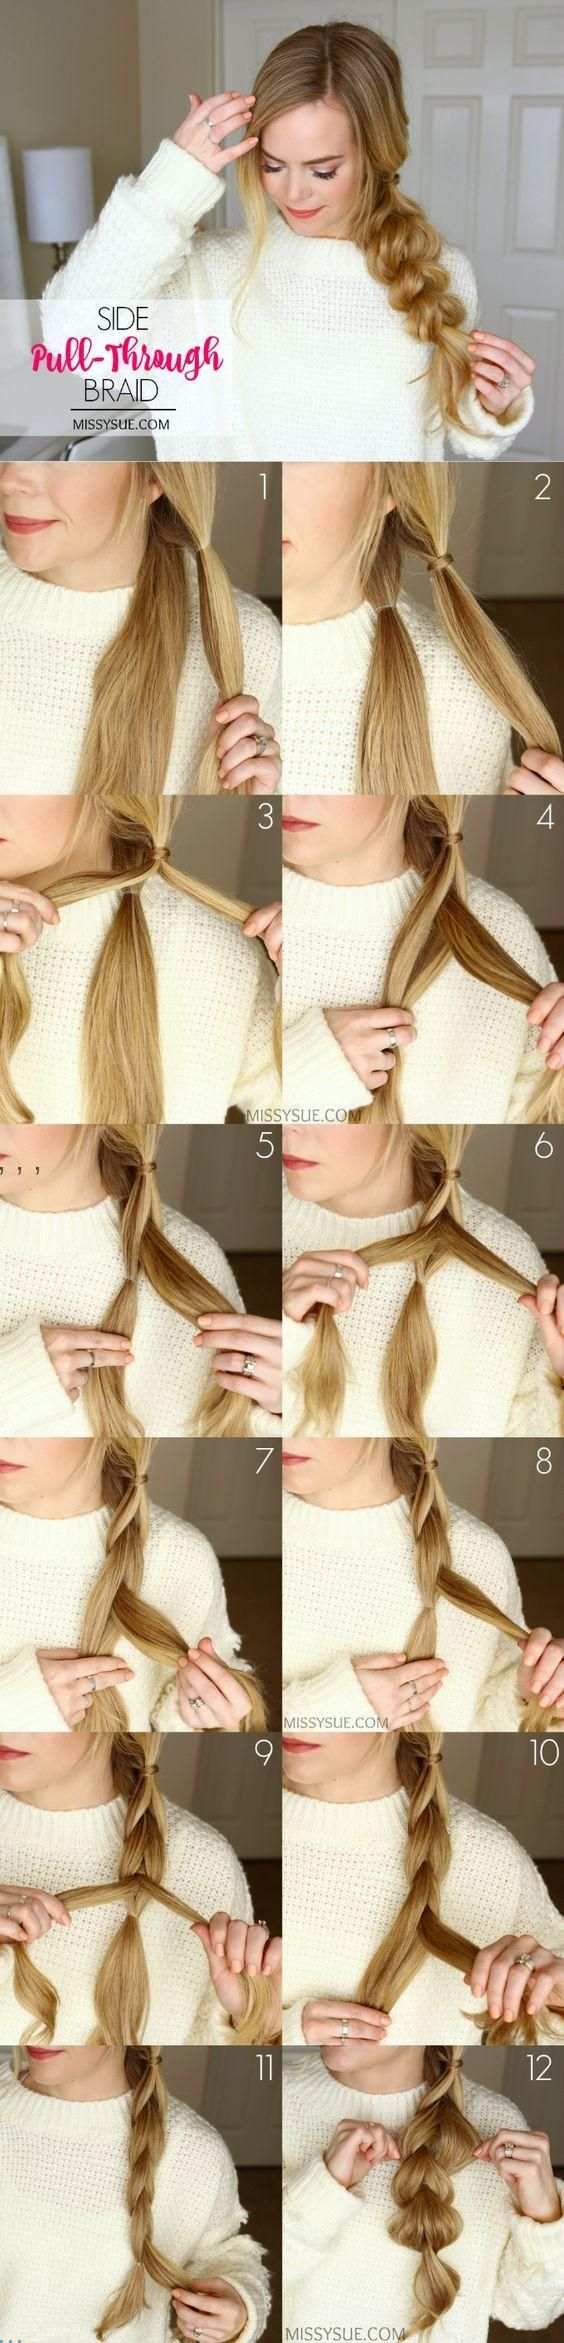 Missy Sue's       Pull Through Side Braid Tutorial